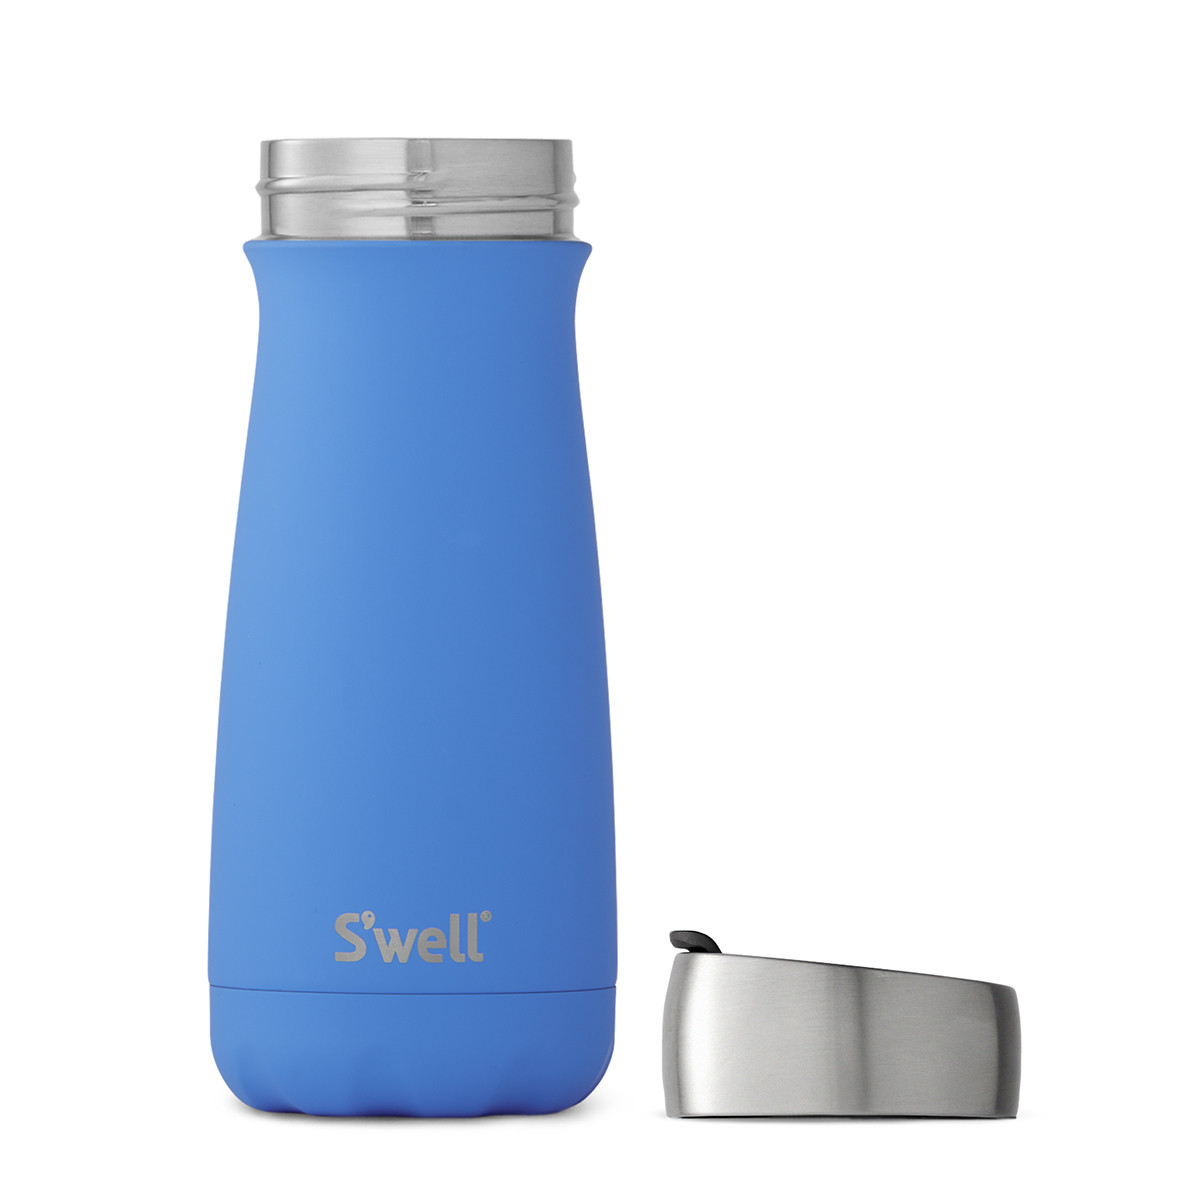 S'Well: Commuter Soft Touch Collection Insulated Bottle - Geyser (470ml) image